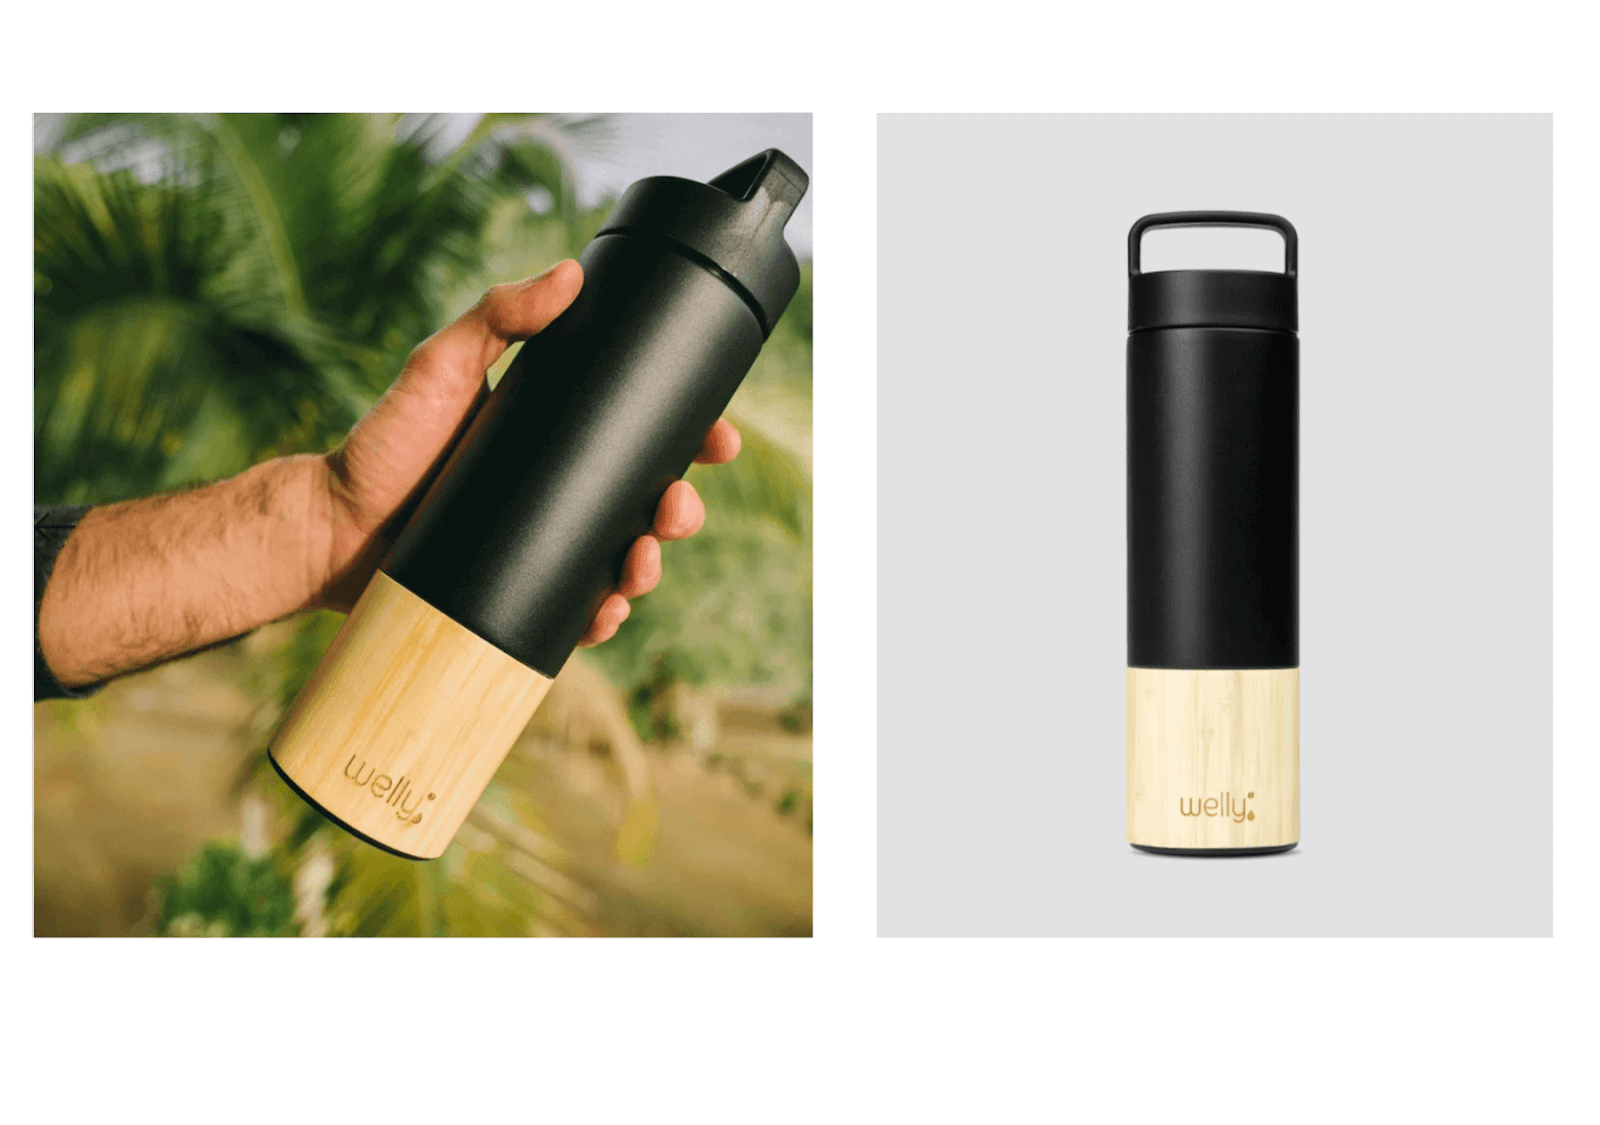 Two images of Welly Water bottles, one being held by a person and the other against a plain backdrop.